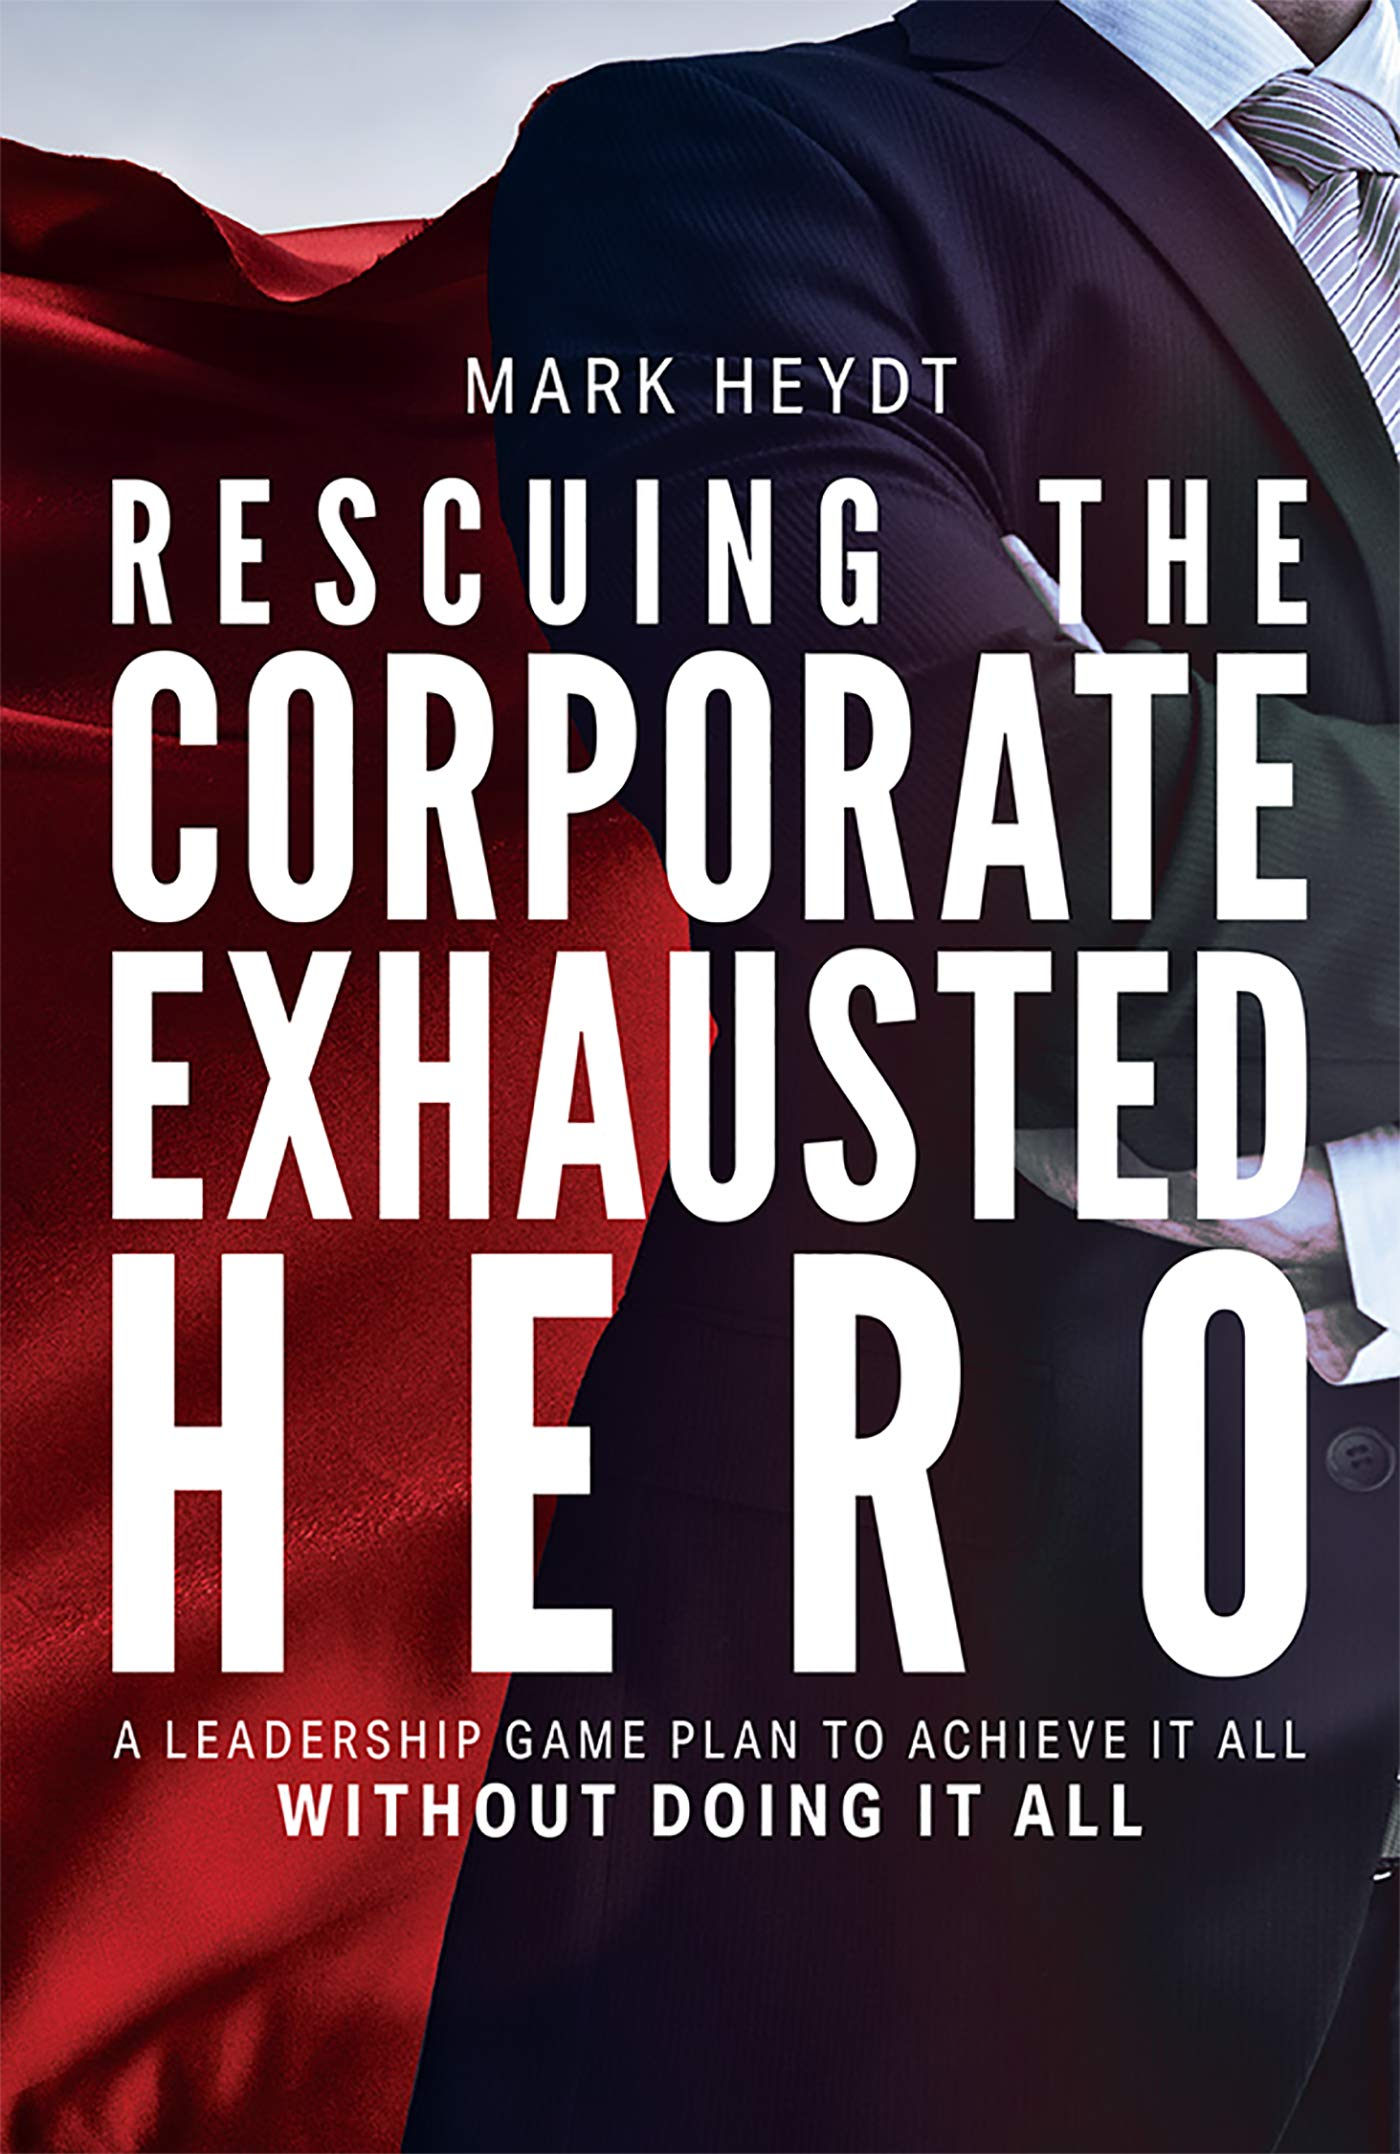 Rescuing The Corporate Exhausted Hero: A Leadership Game Plan To Achieve It All Without Doing It All